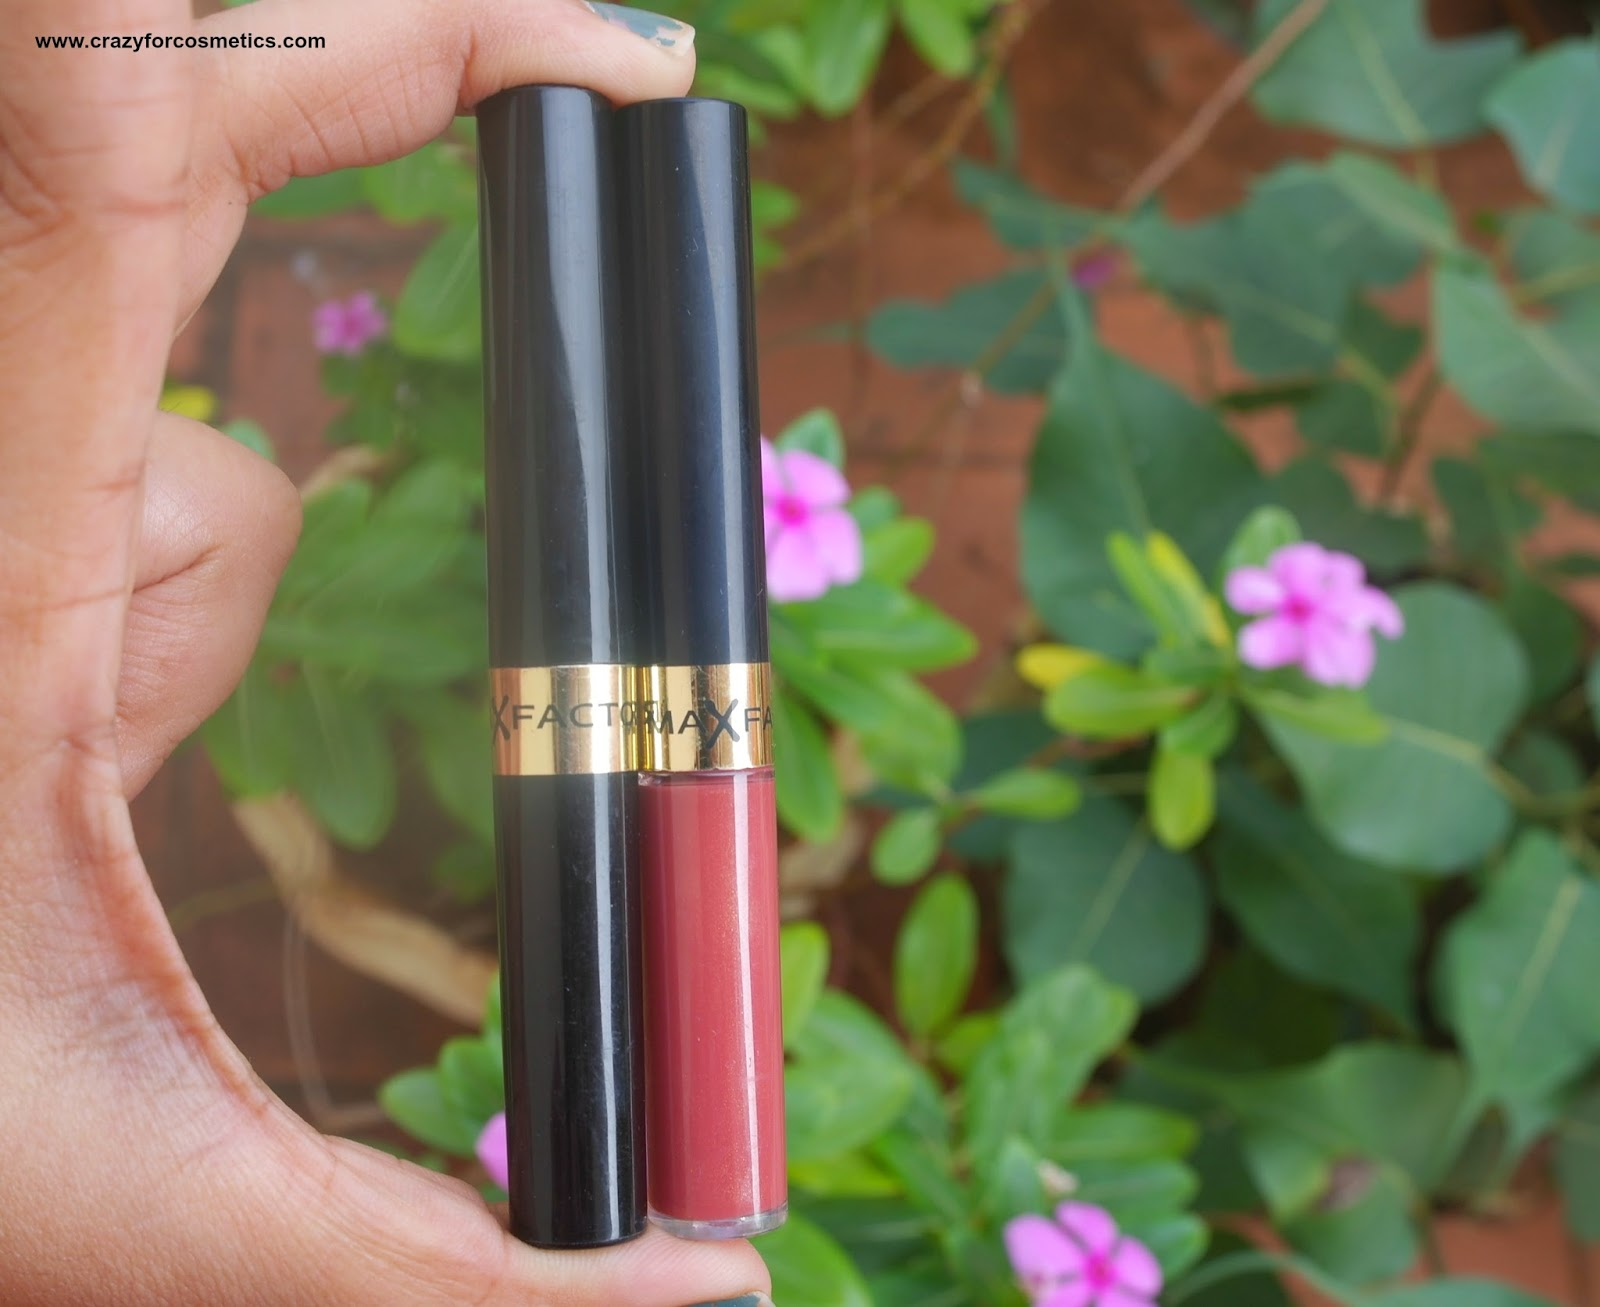 Max factor Lipfinity Lip Tint in Spicy Review